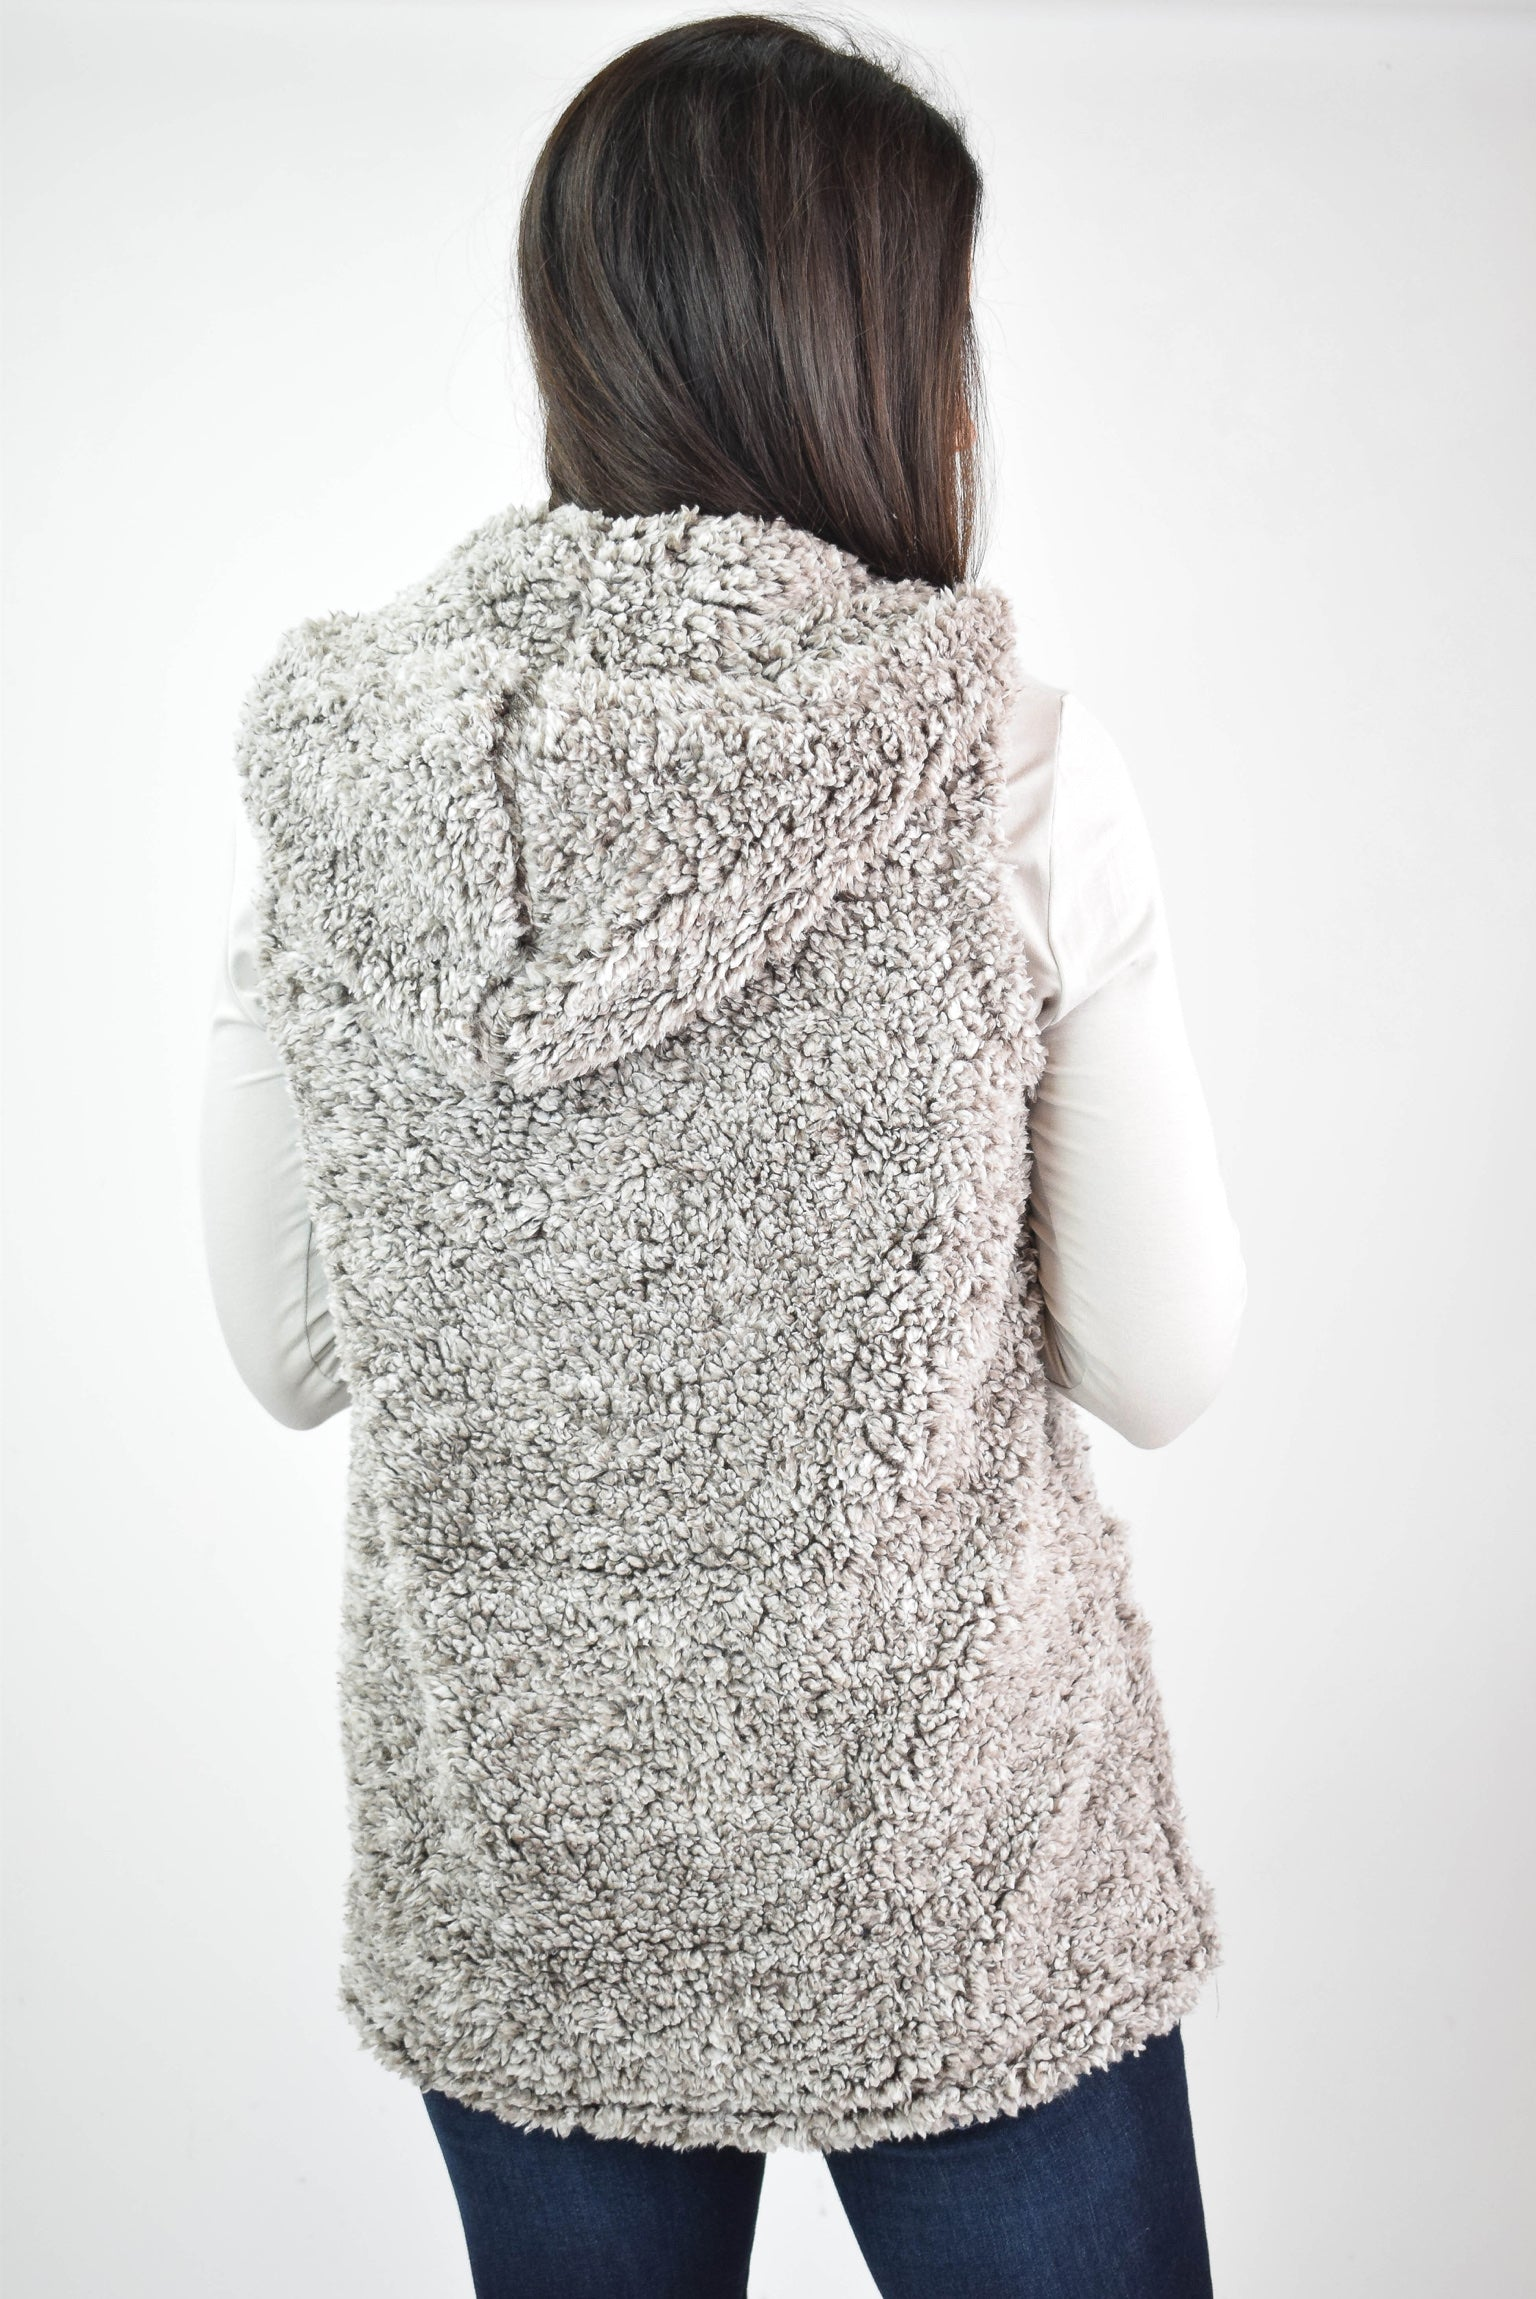 Pure Perfection Sherpa Vest - Chocolate